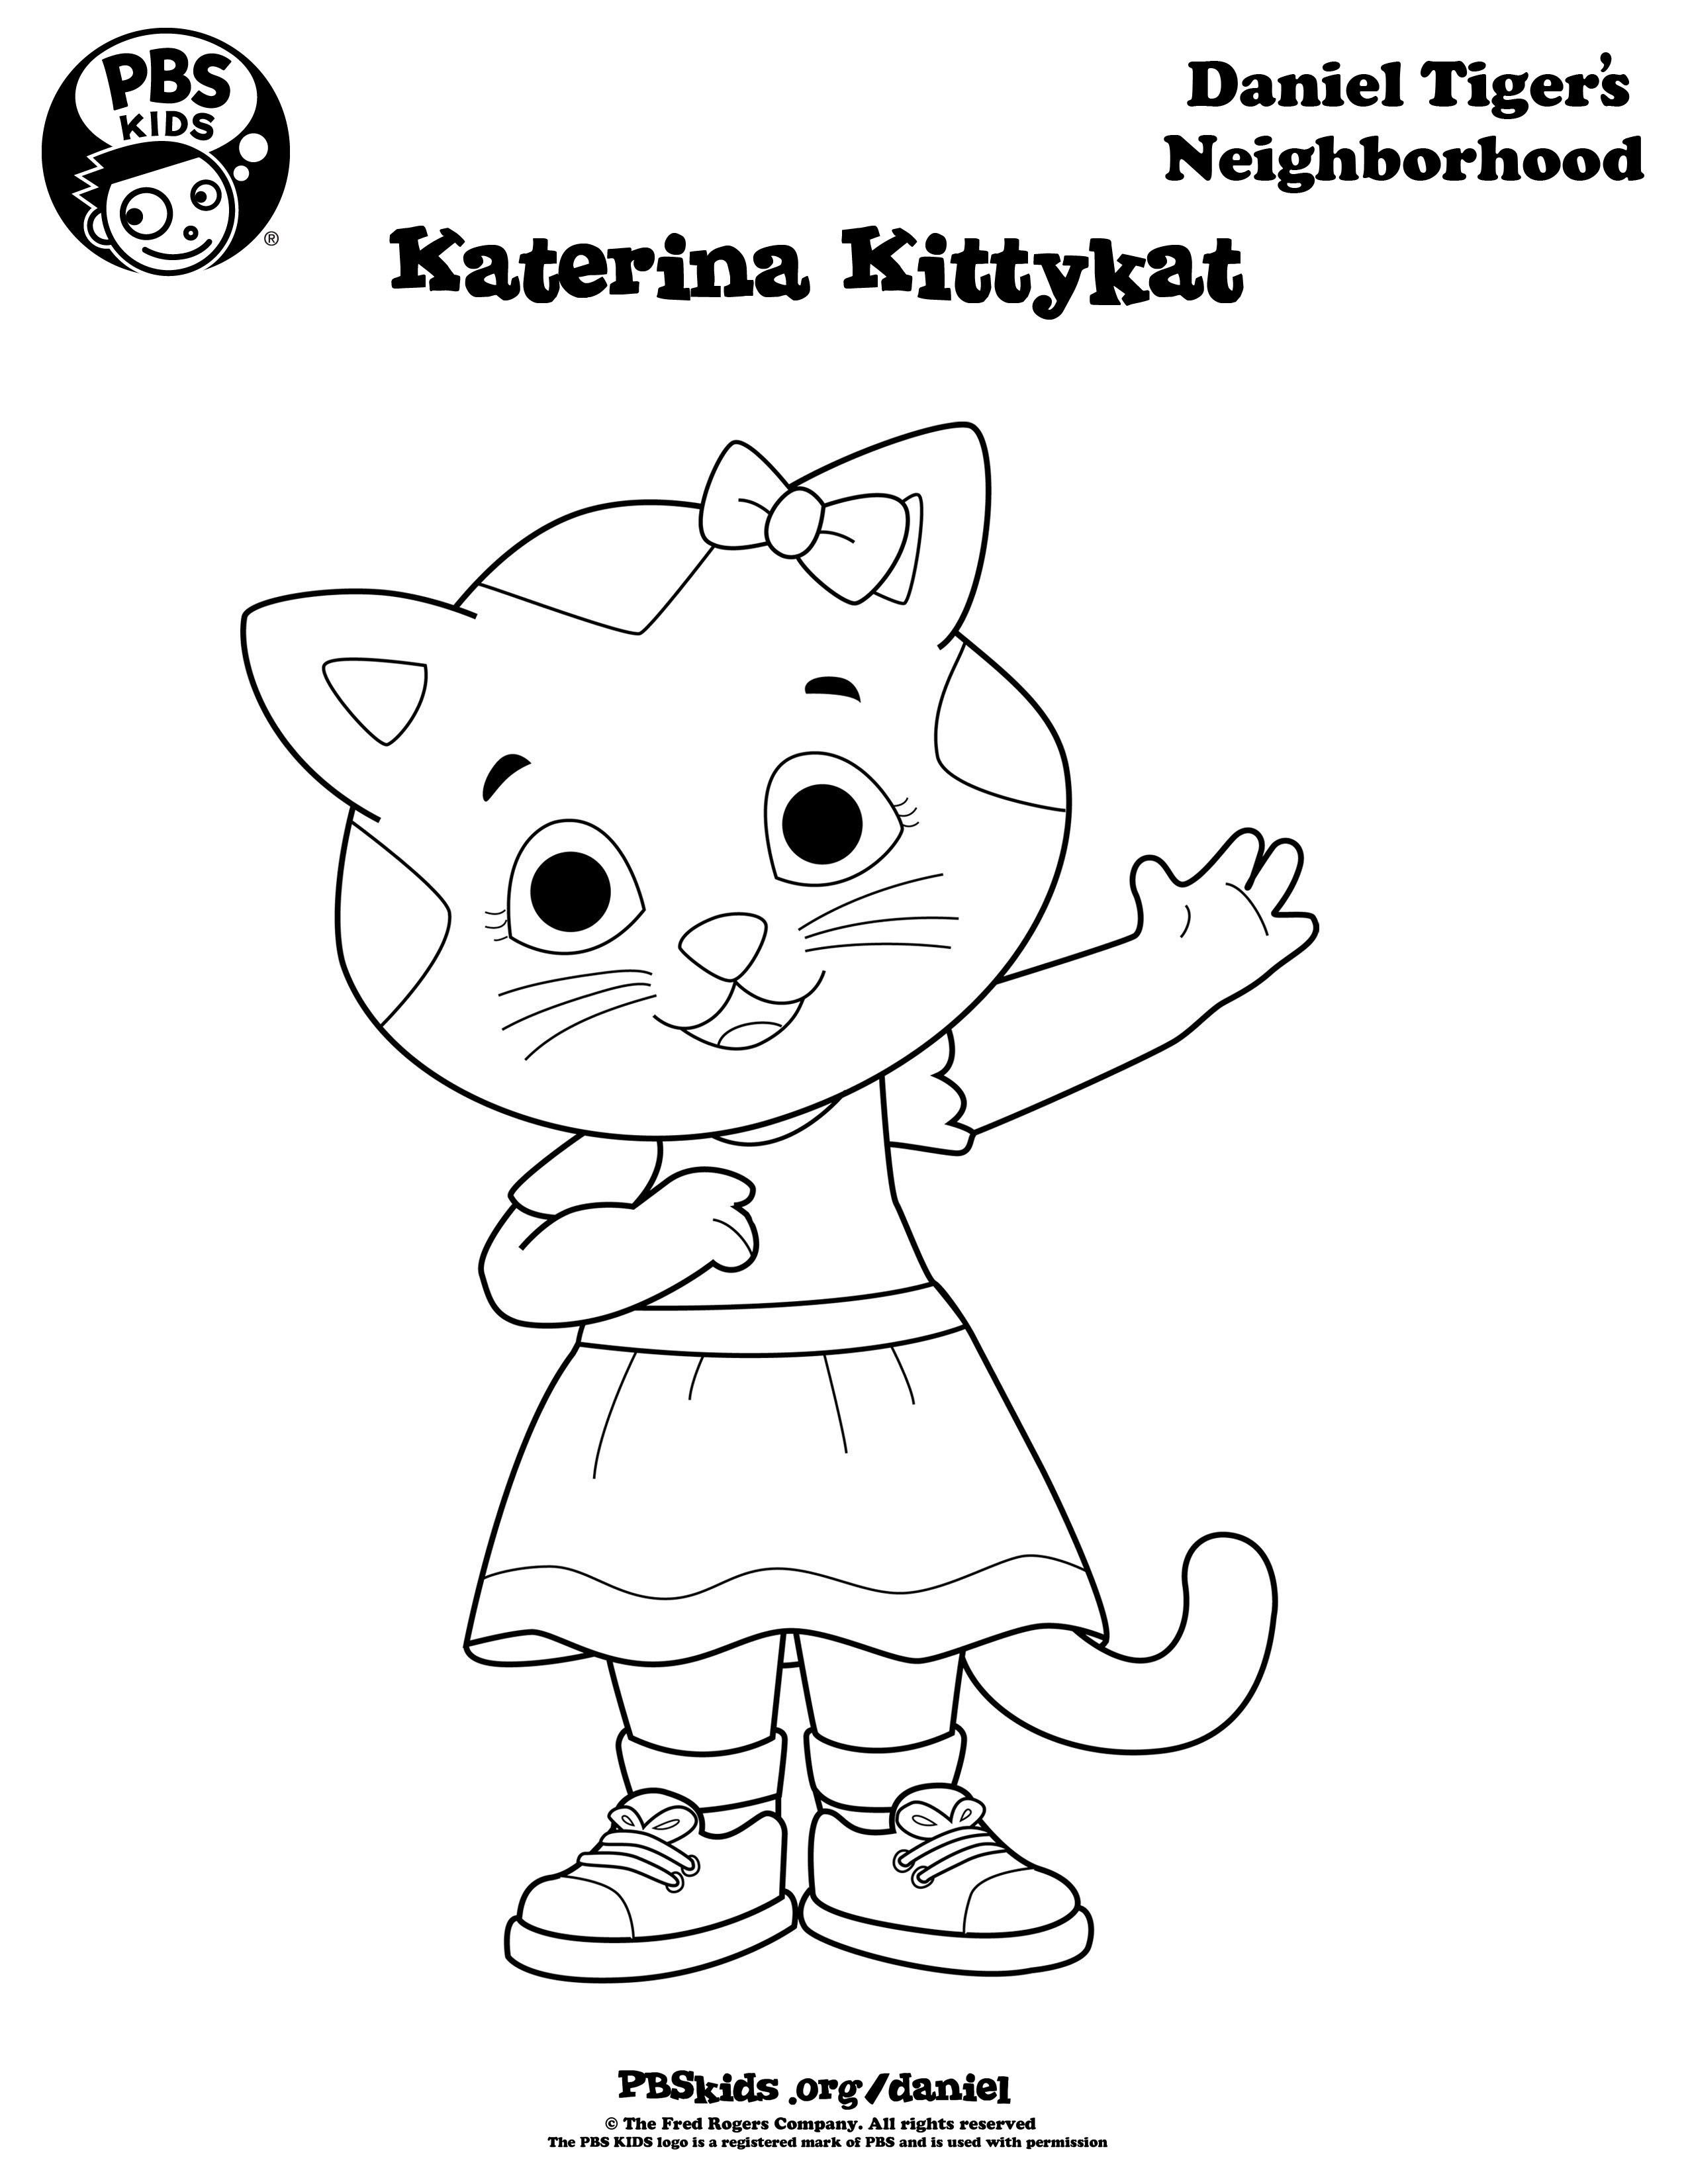 image regarding Daniel Tiger Coloring Pages Printable identified as Daniel Tiger Coloring Webpages - Great Coloring Web pages For Youngsters